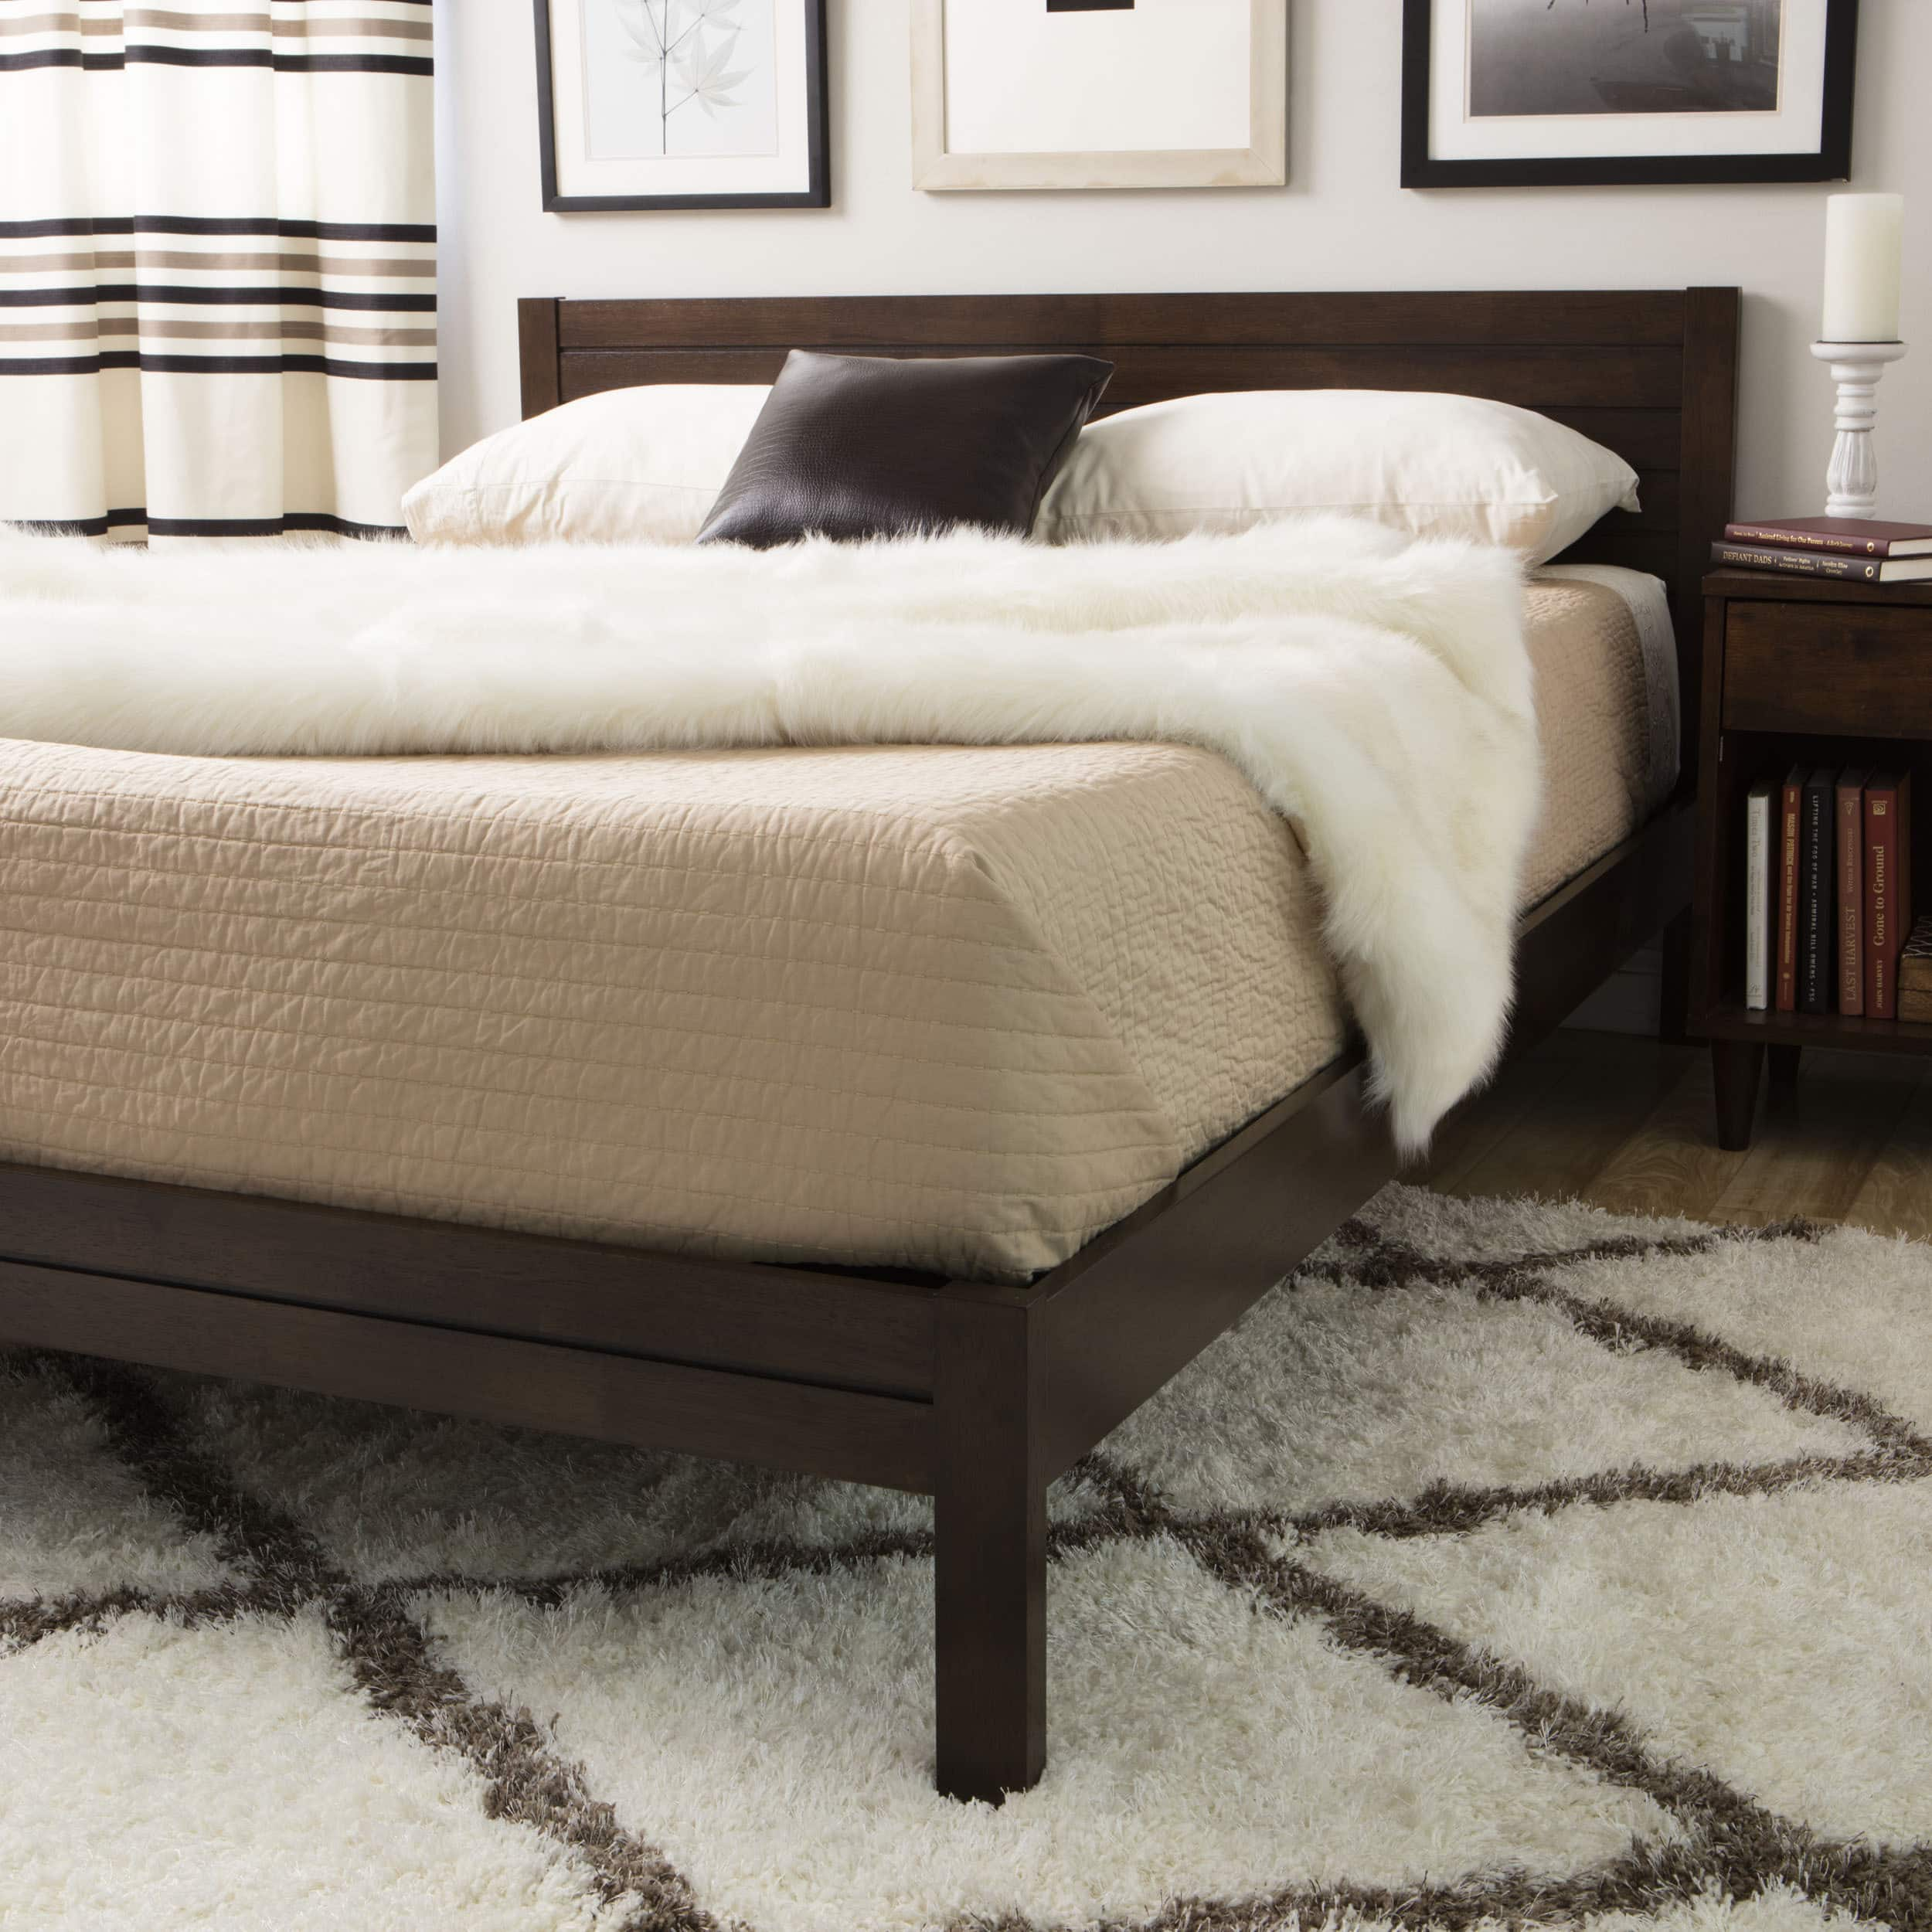 Best Place To Buy Beds Online: Buy Beds Online At Overstock